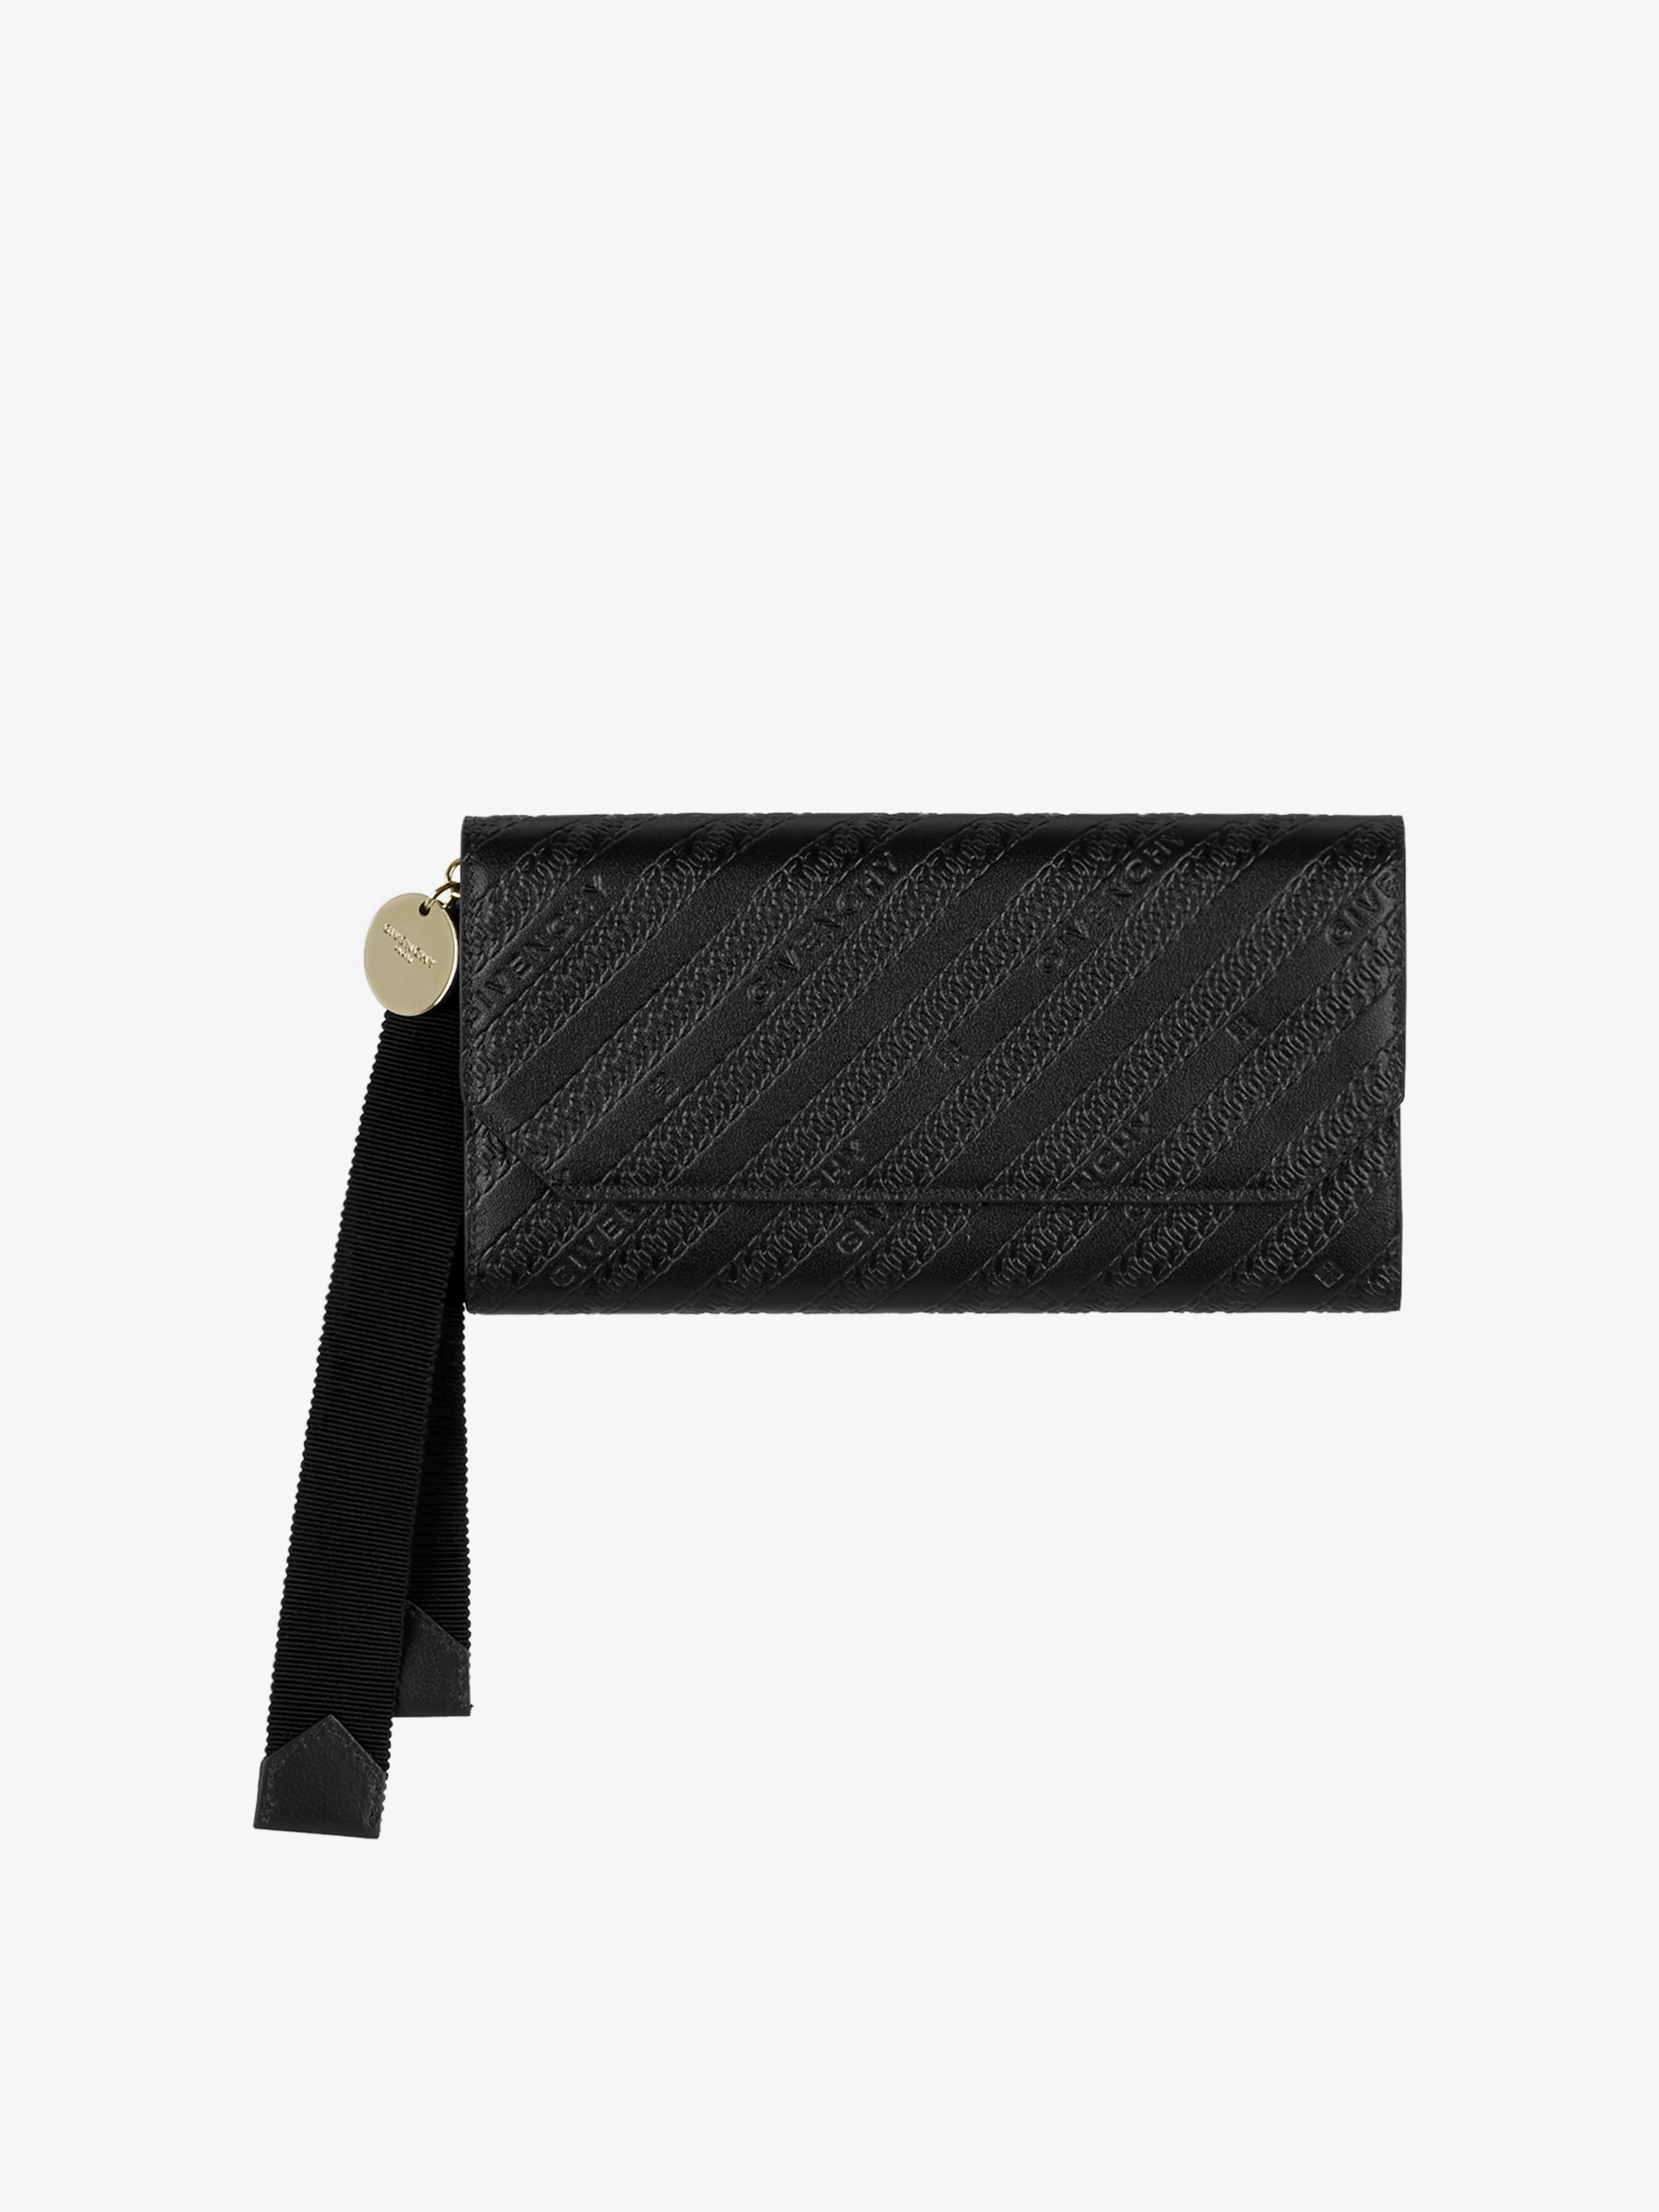 Long flap wallet in GIVENCHY chain leather